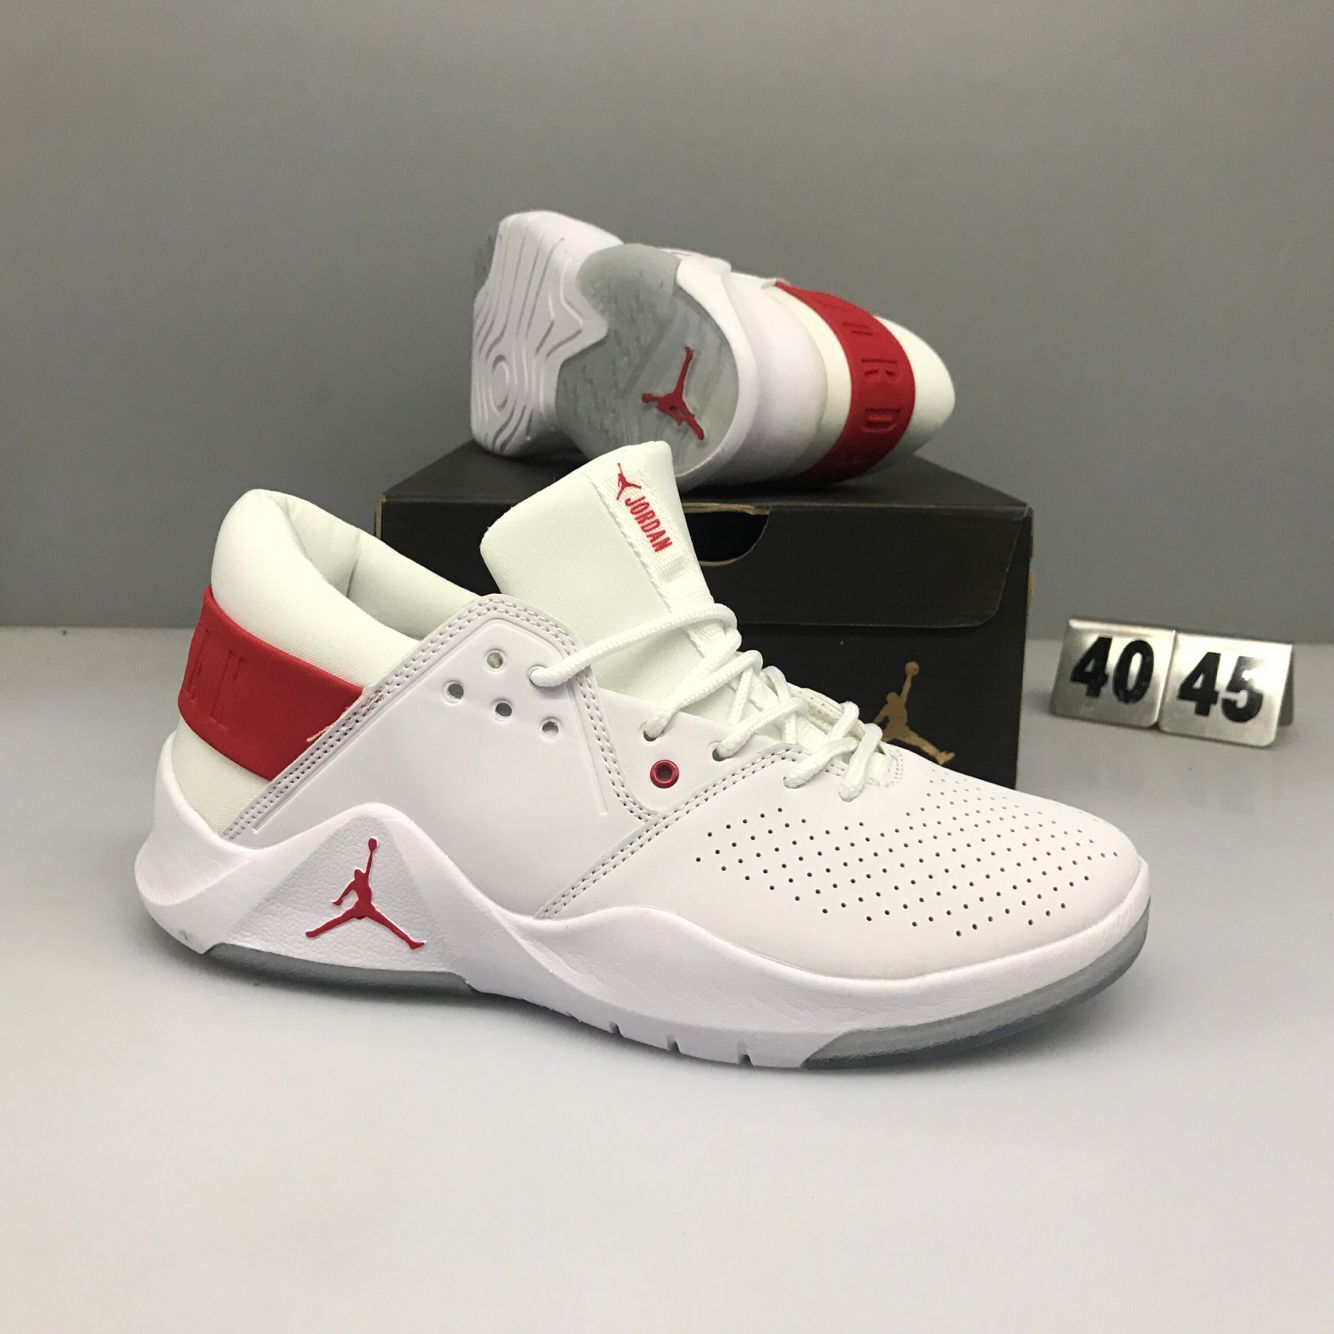 Nike Jordan Flight Fresh White Red Shoes